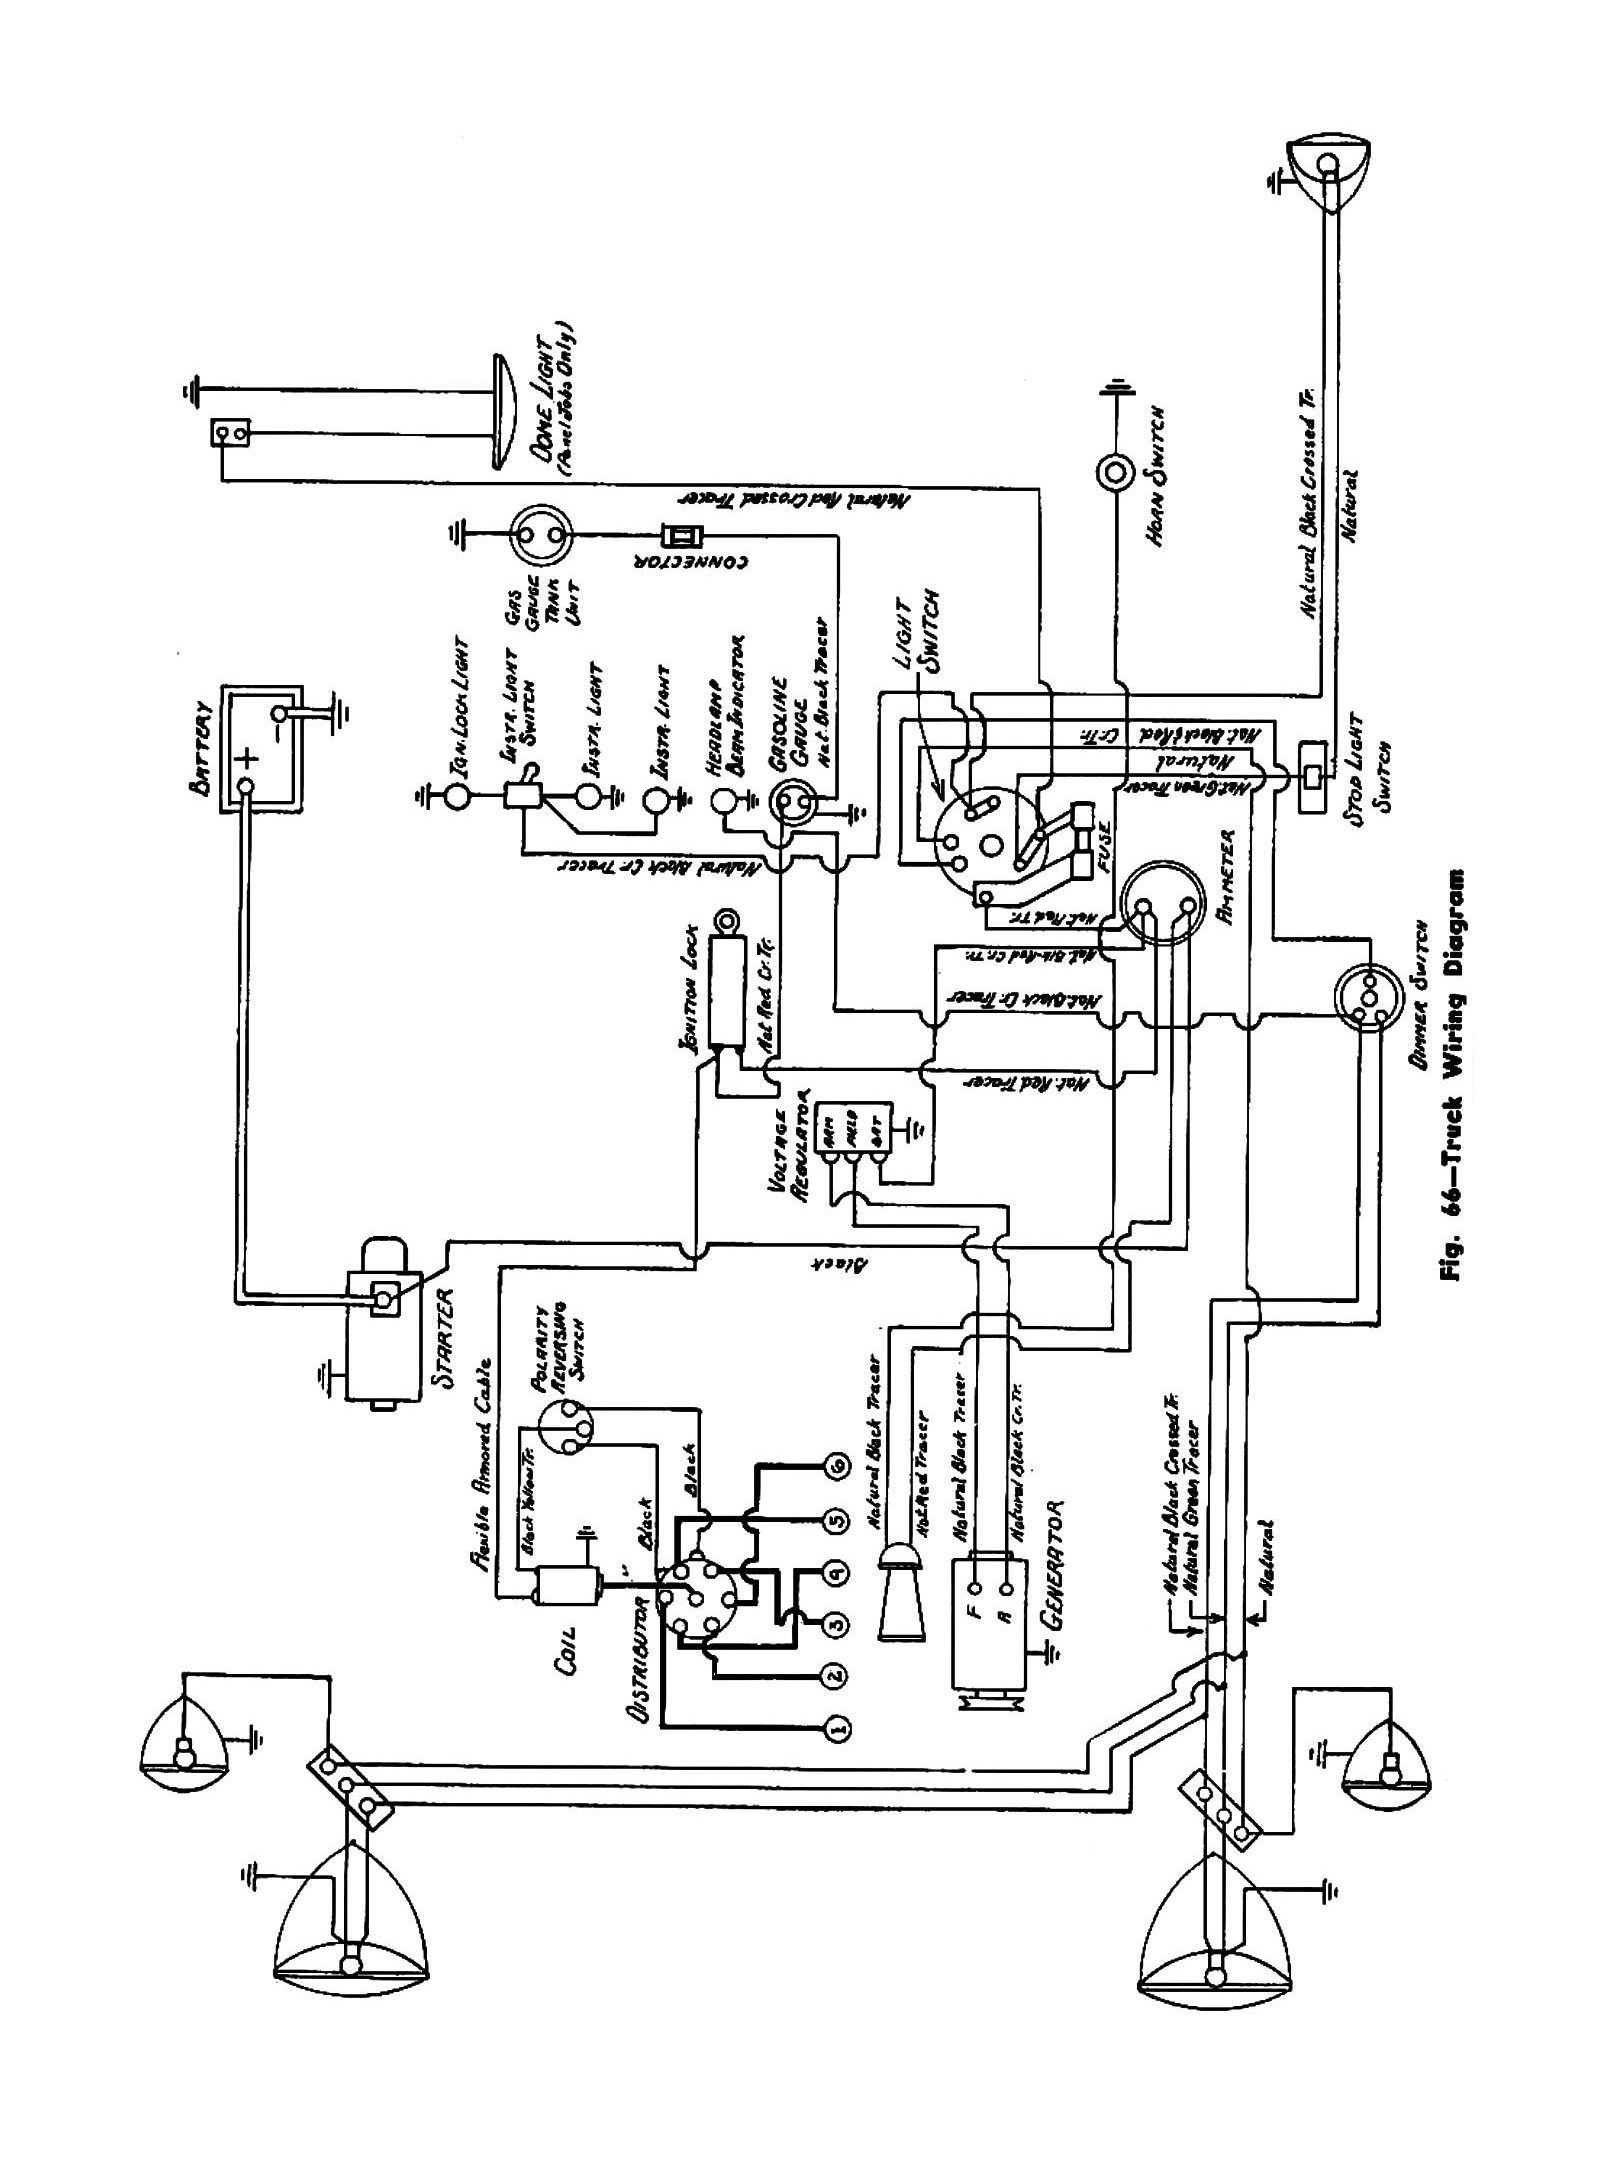 hight resolution of chevy wiring harness wiring diagram centre 1955 chevy generator wiring diagram 1955 chevy generator wiring diagram